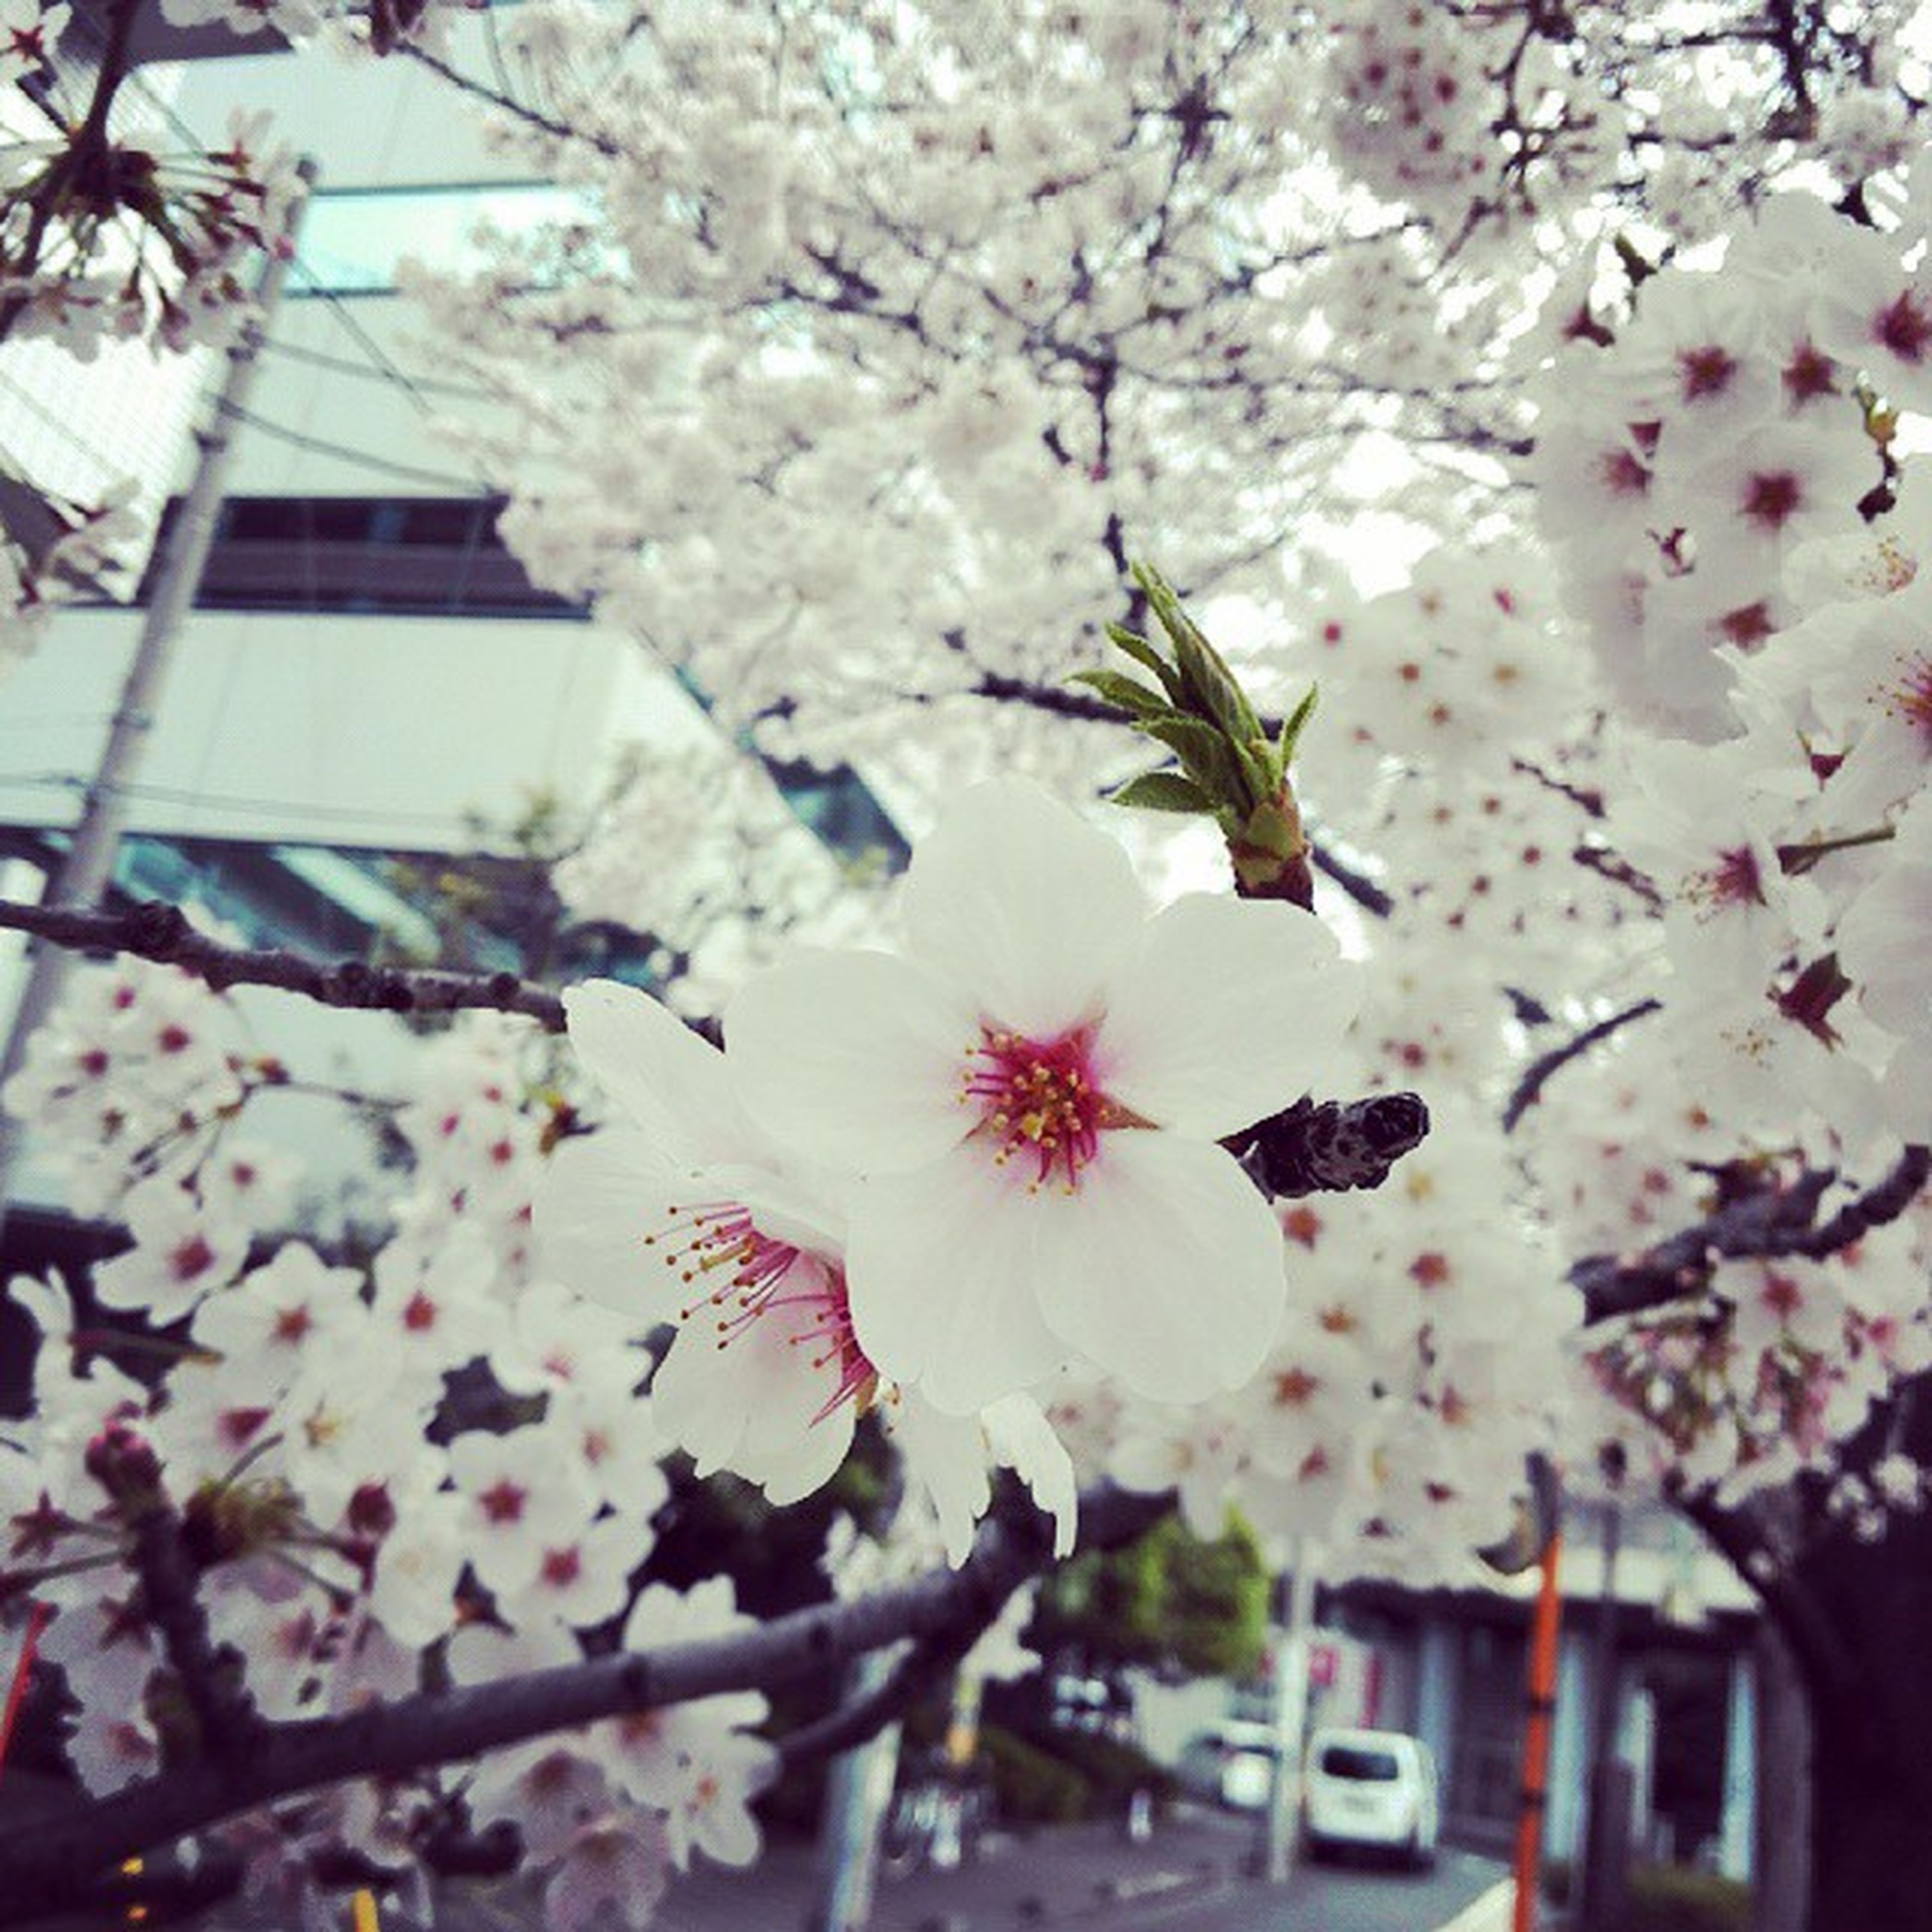 flower, cherry blossom, branch, tree, fragility, freshness, cherry tree, blossom, growth, building exterior, pink color, architecture, low angle view, built structure, petal, nature, beauty in nature, in bloom, springtime, fruit tree